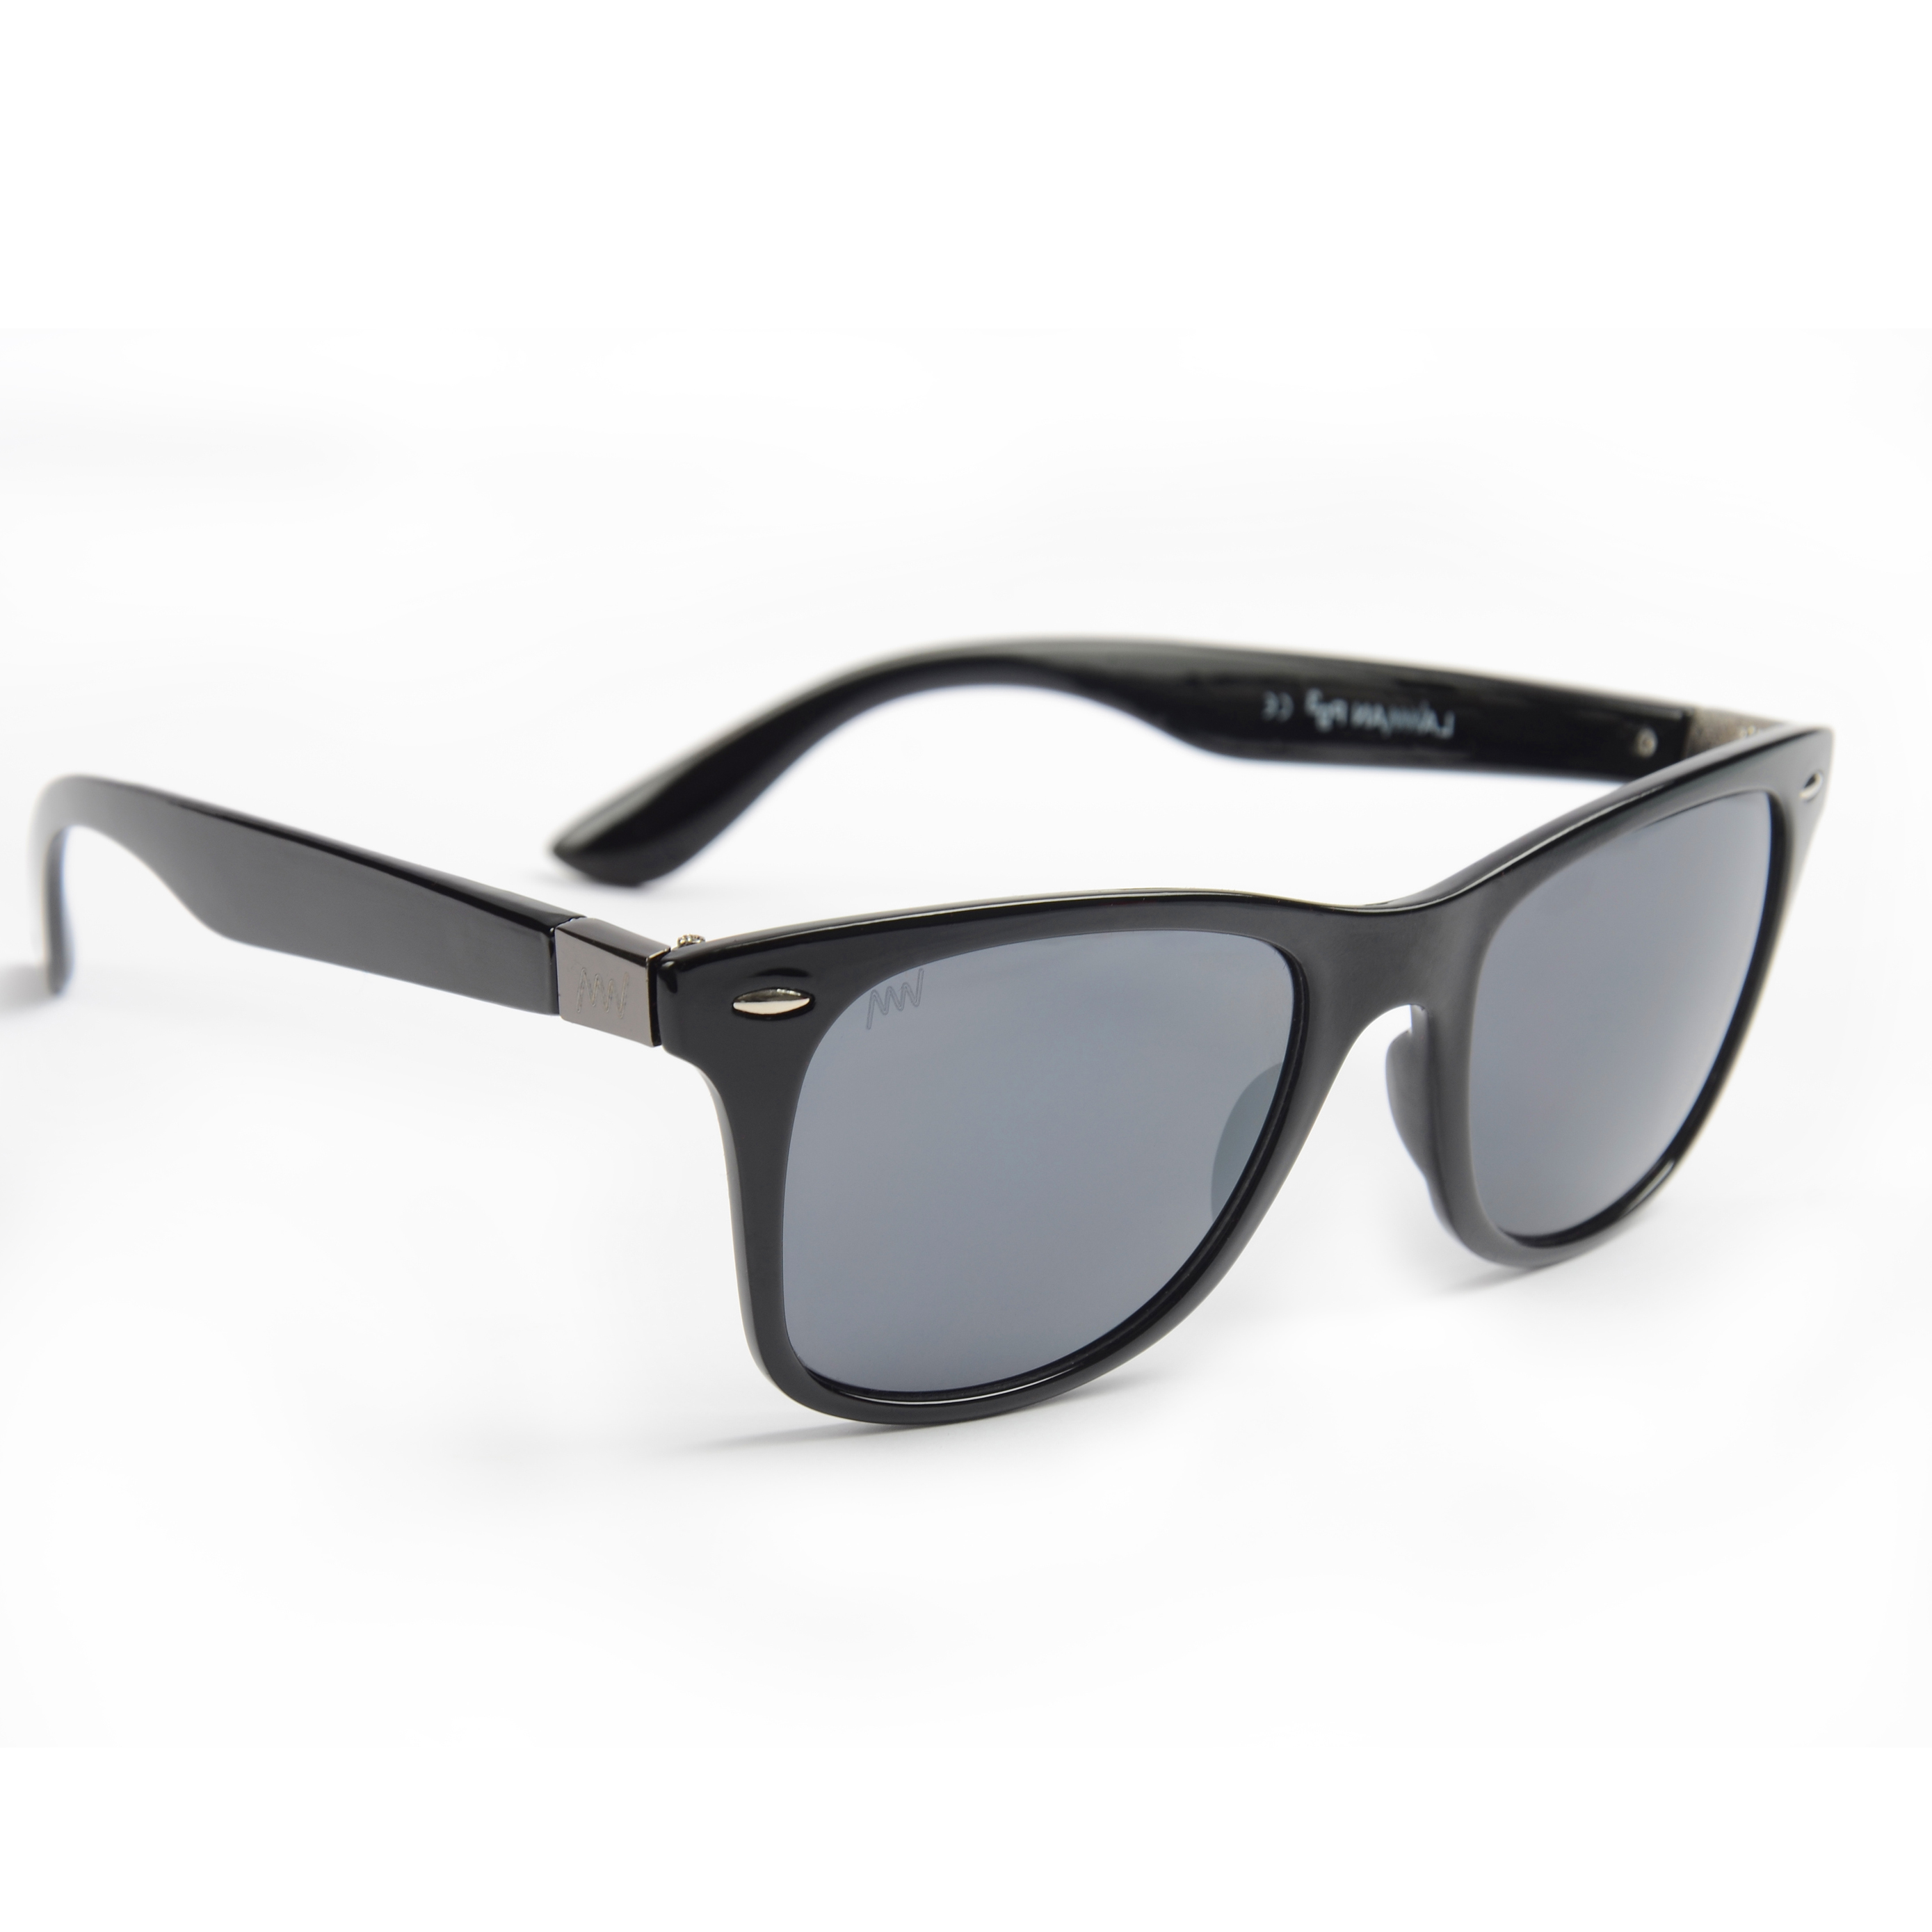 Lawman Pg3 Trendy Wayfarer Sunglass For Men (LA2312 STNDRD COL-2)